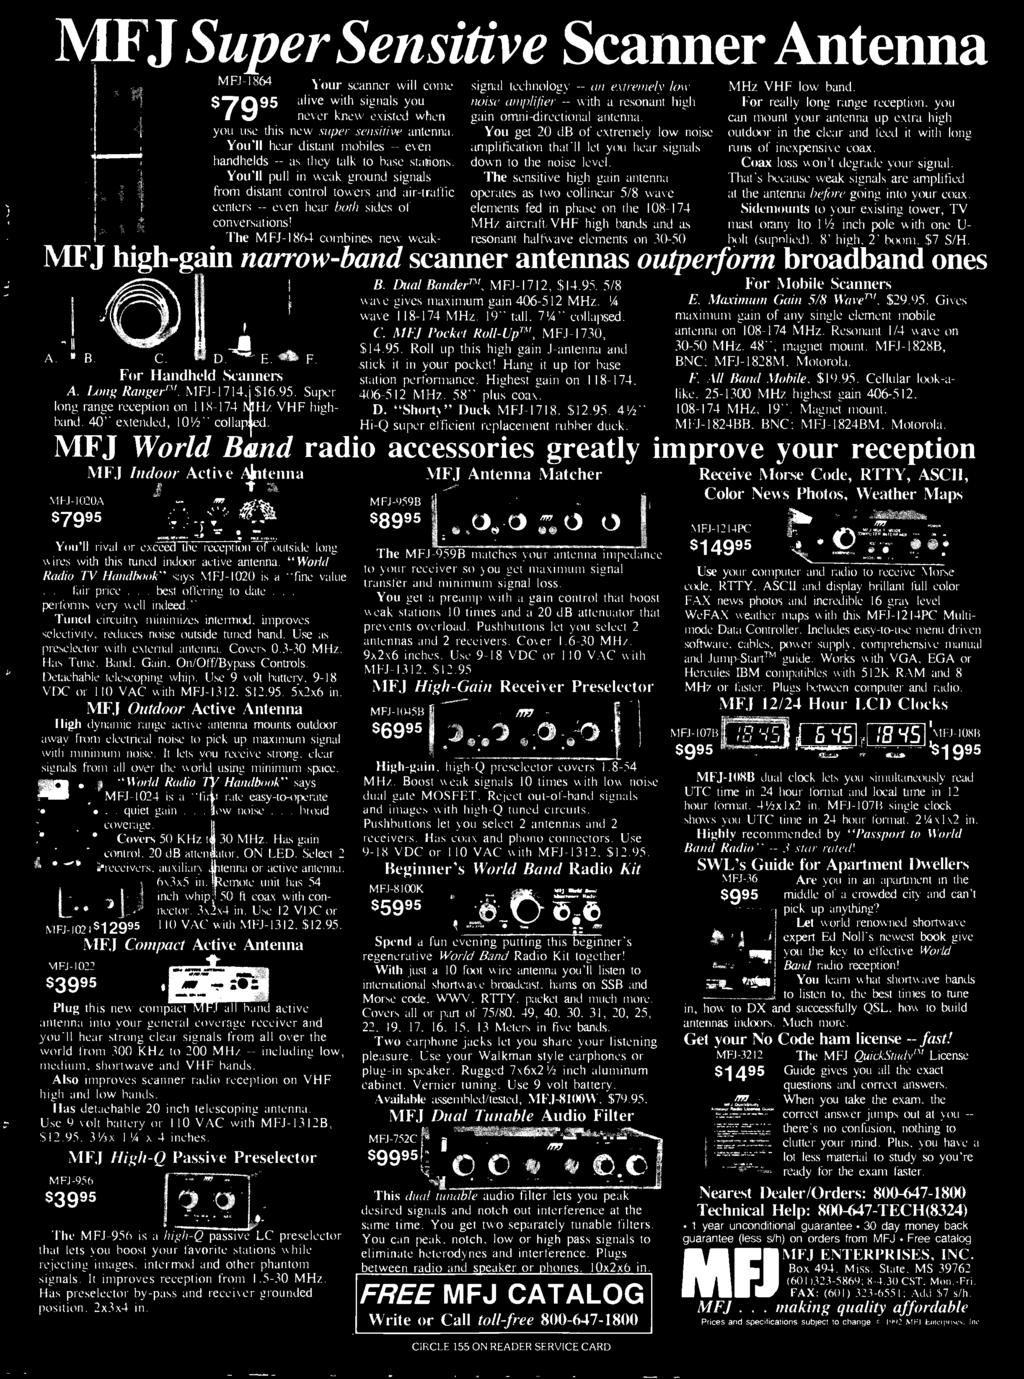 Satellite Pirates Whats A New Country Anyway Also In This Issue Dual Air Zenith Ob1 Compressor Wiring Diagram For Youll Hear Distant Mobiles Even Handhelds As They Talk To